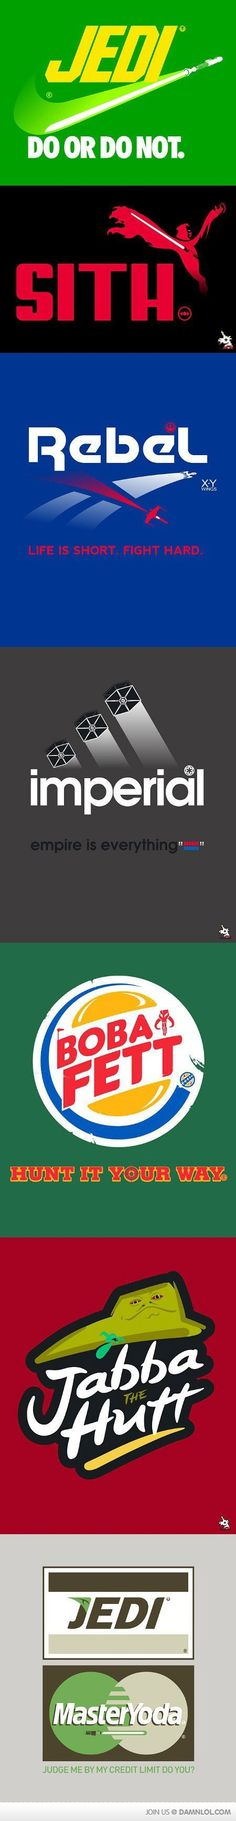 Brands of the Star Wars universe